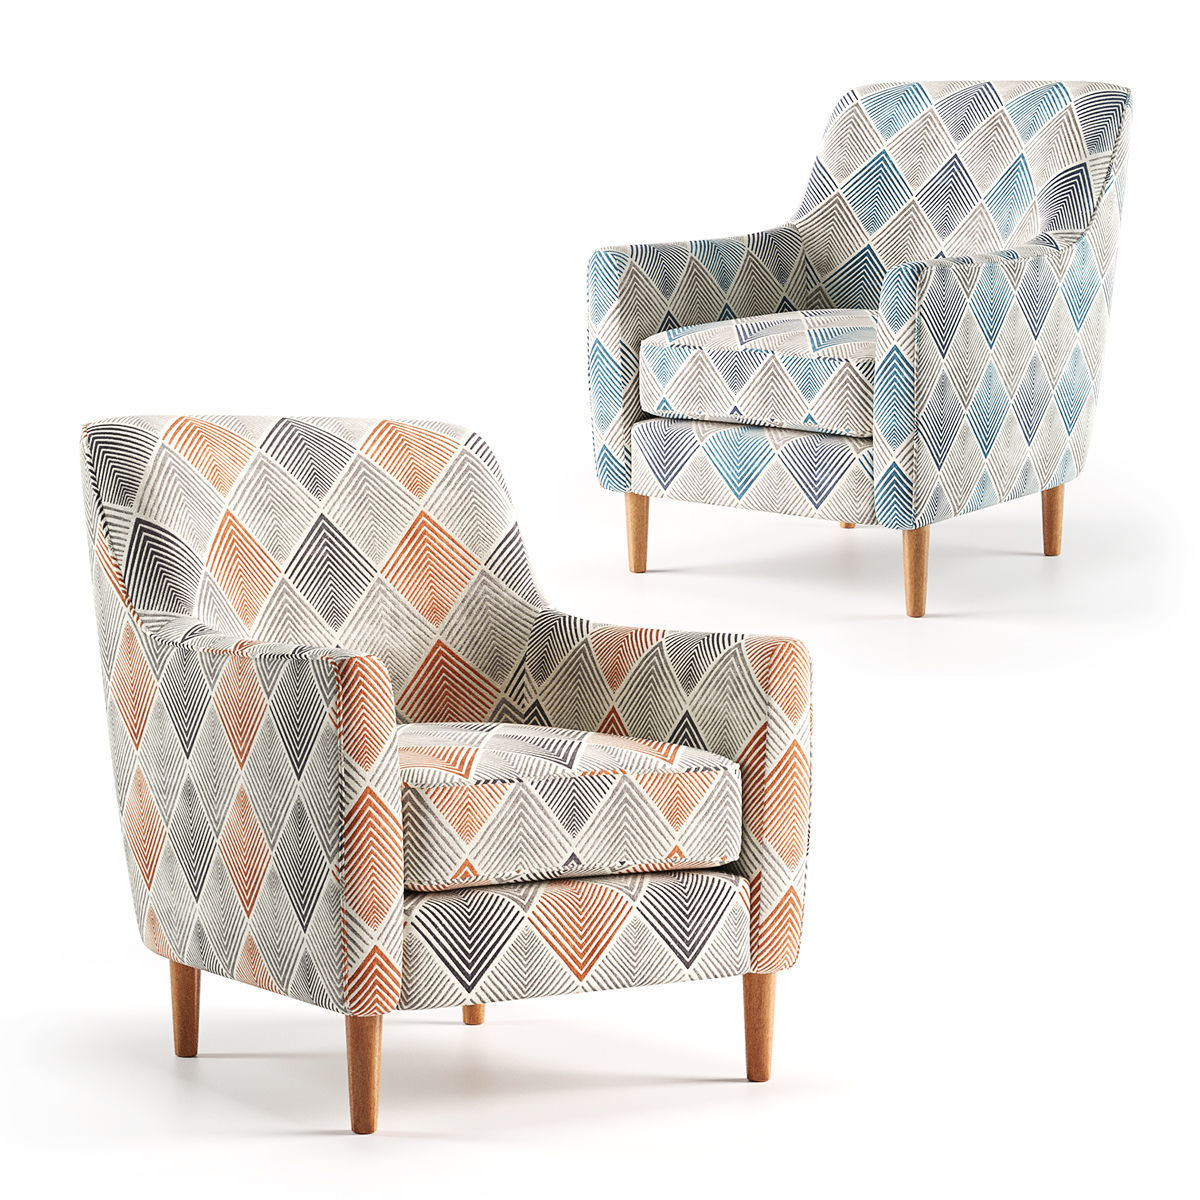 Groovy Sven Sunset And Denim Accent Chairs 3D Model Ibusinesslaw Wood Chair Design Ideas Ibusinesslaworg